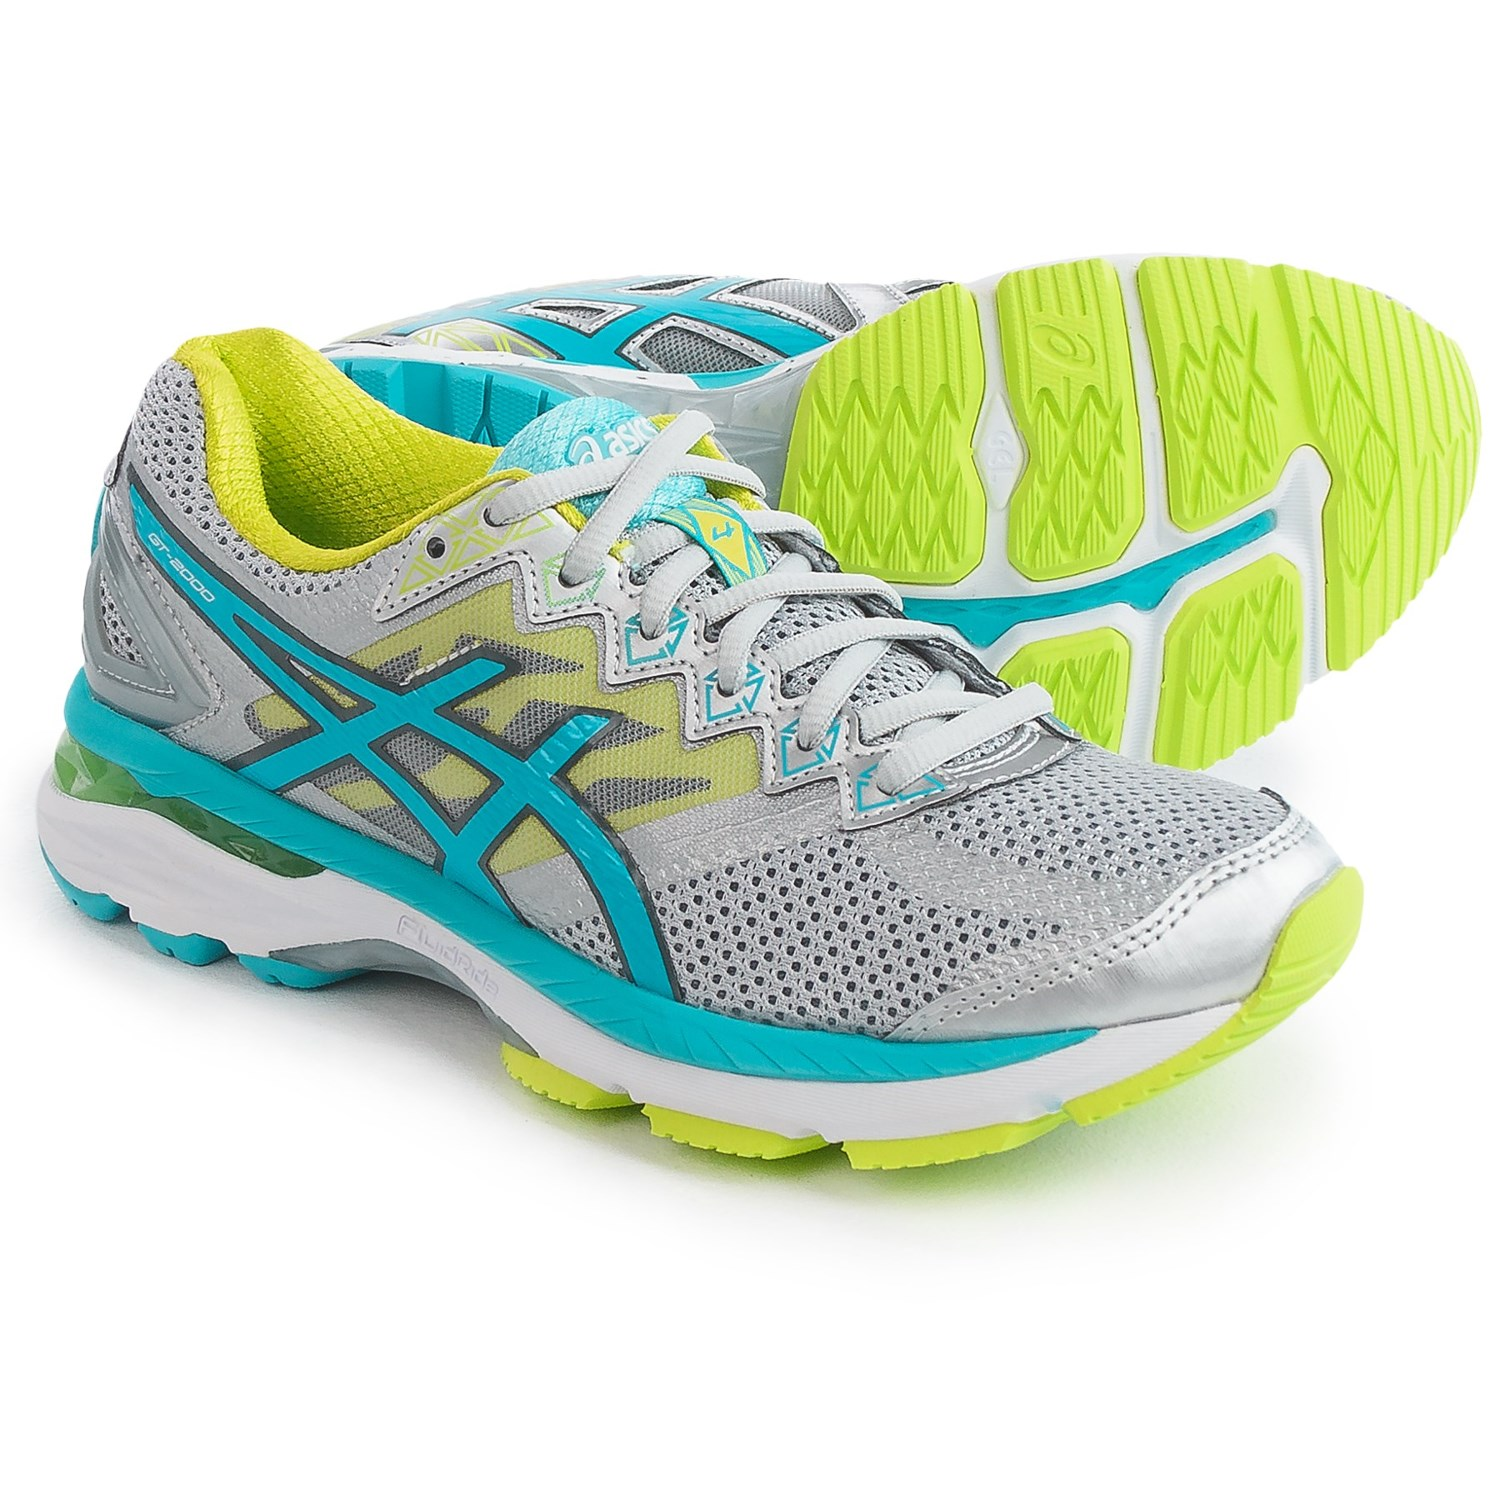 Running Shoes Similar To Asics Gt